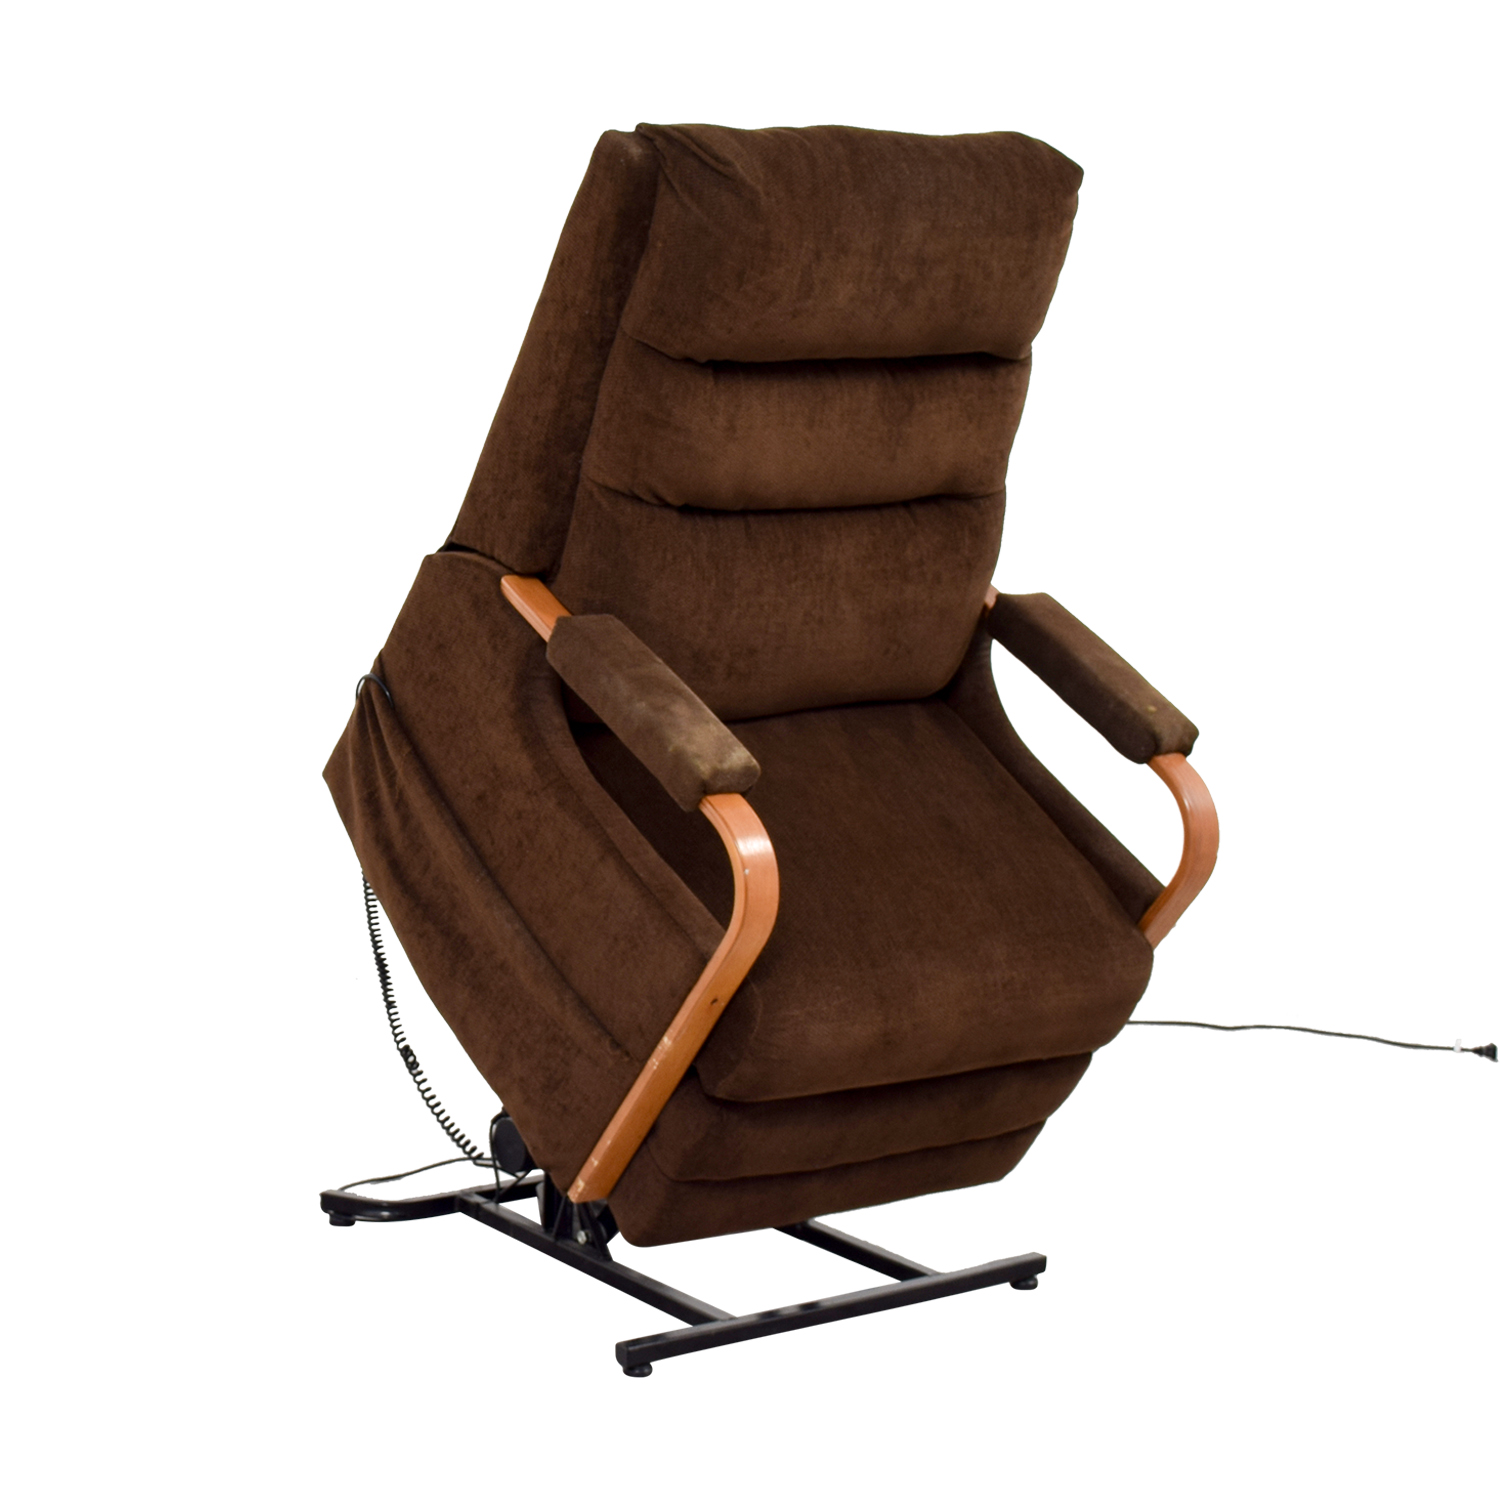 Bobs Furniture Bobs Furniture Brown Remote Control Recliner price